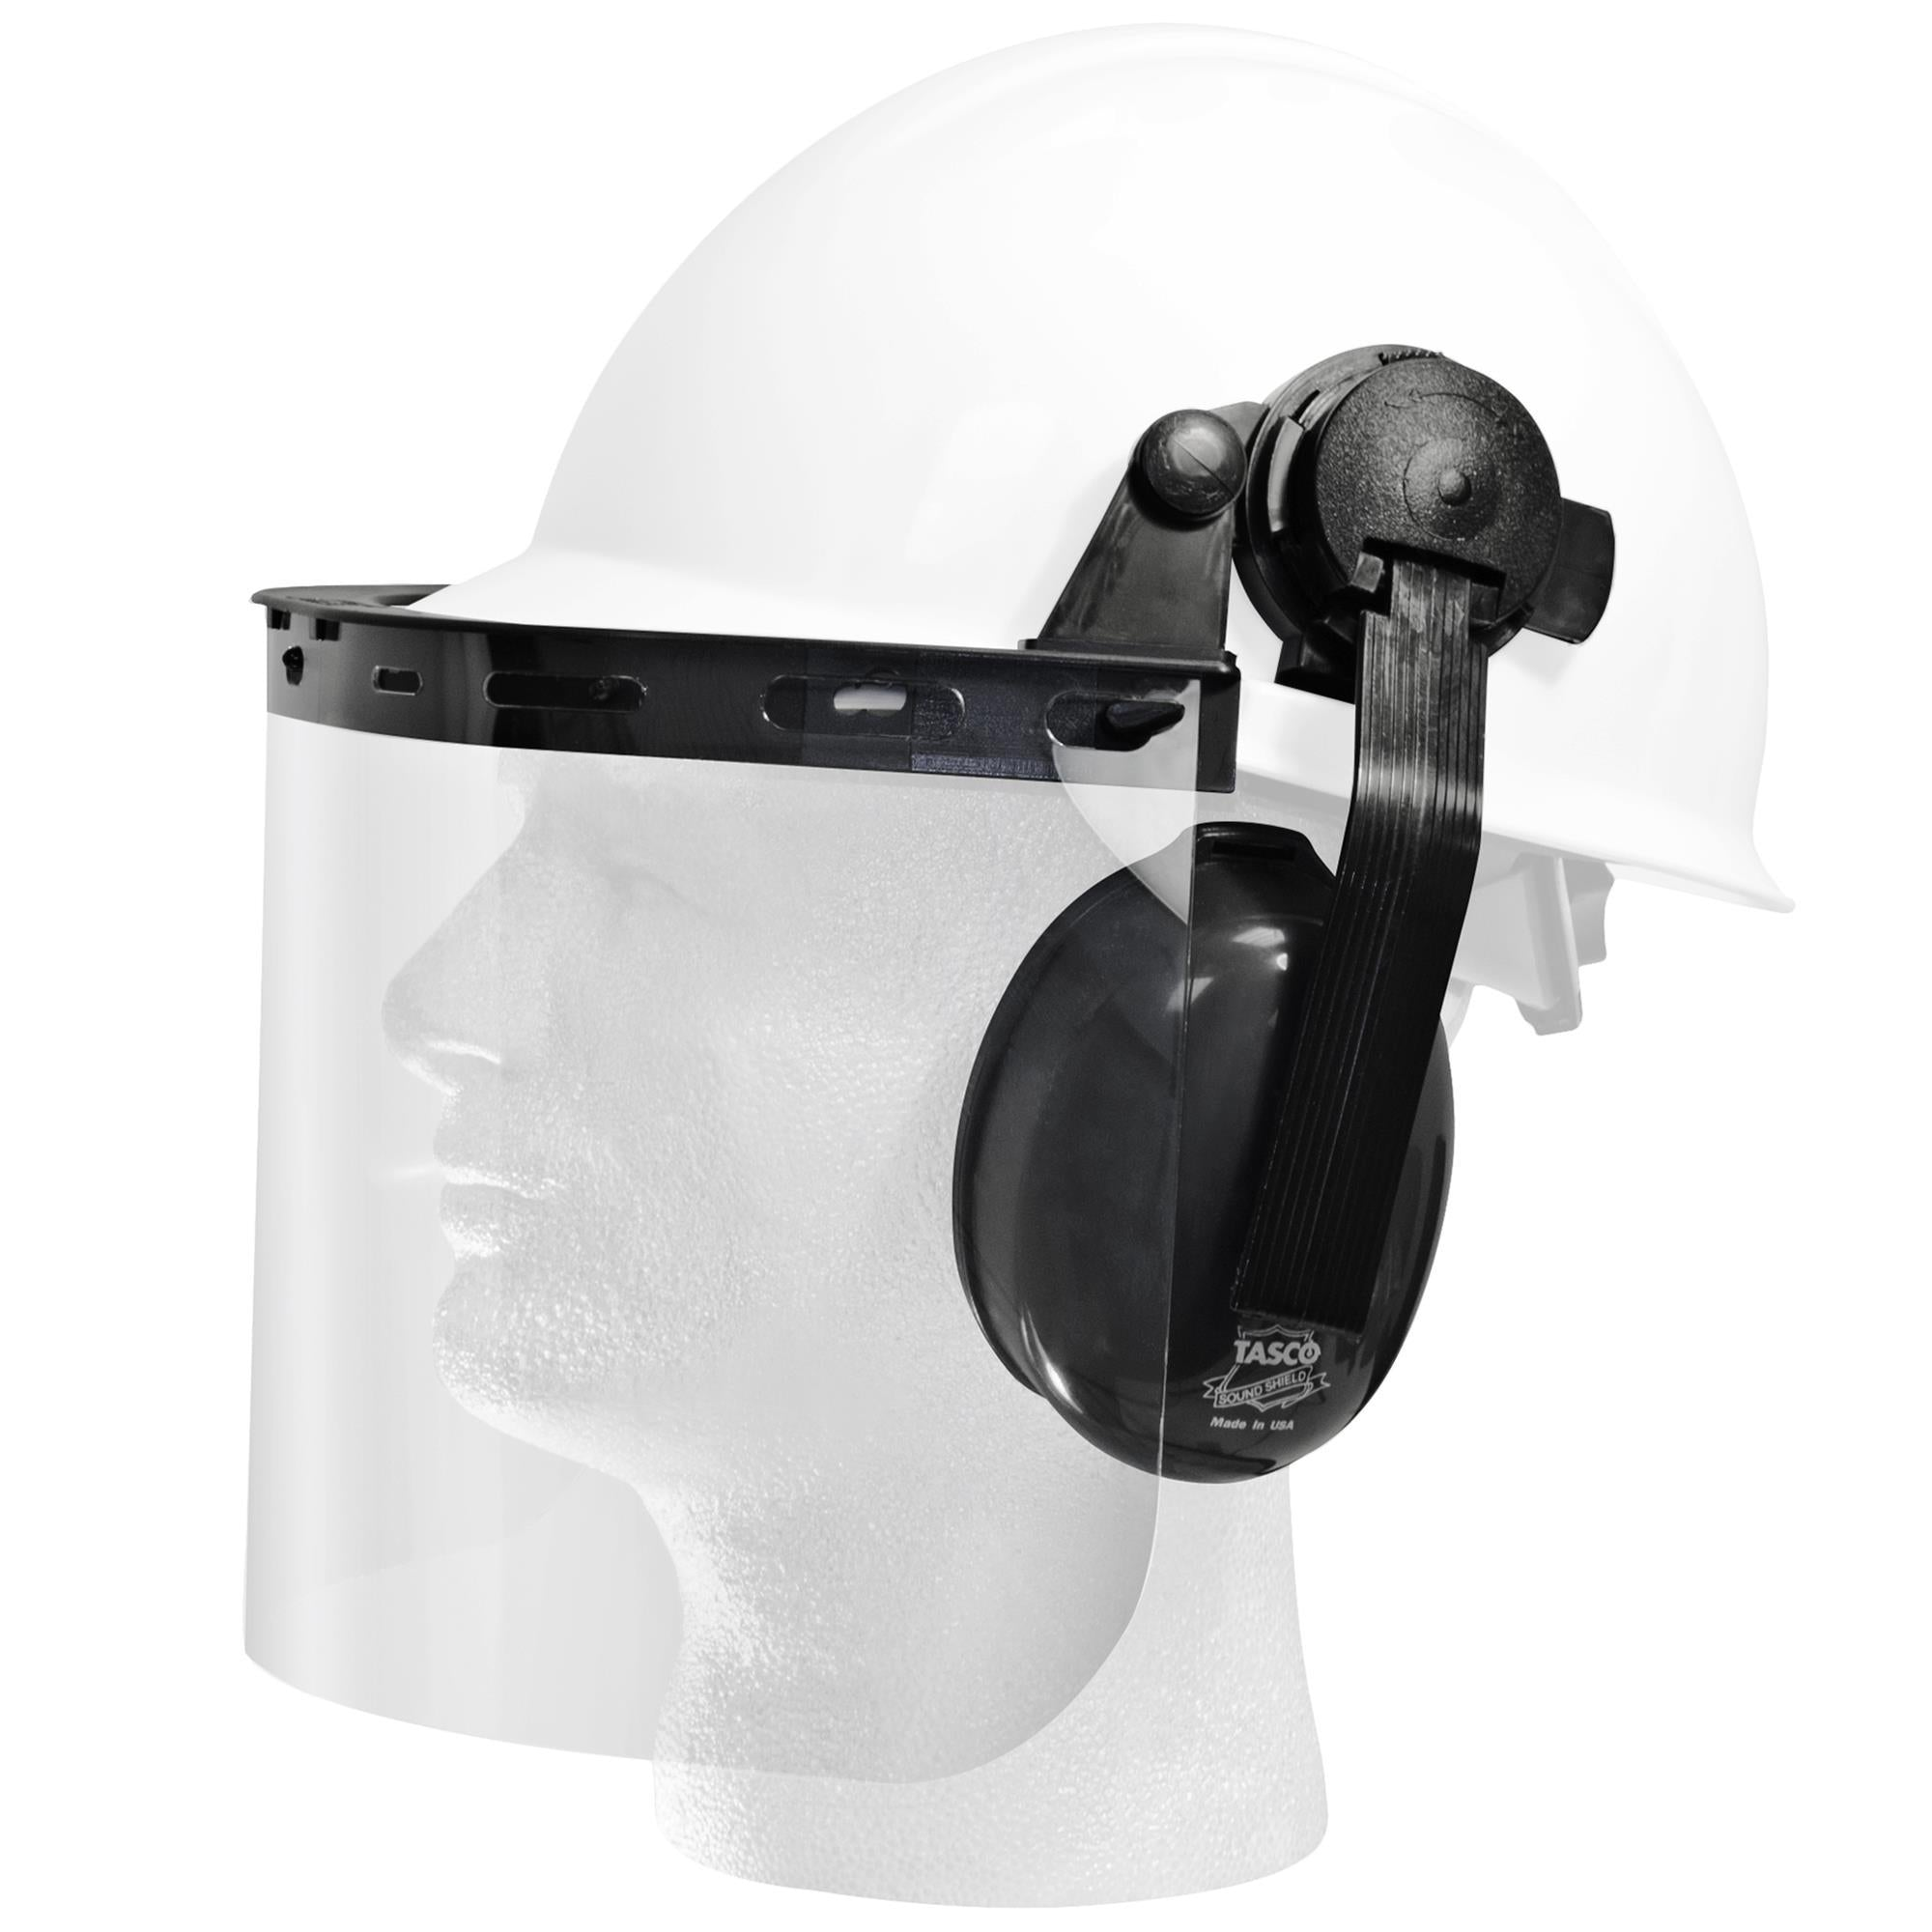 E14 FACESHIELD EAR MUFF KIT 1PC